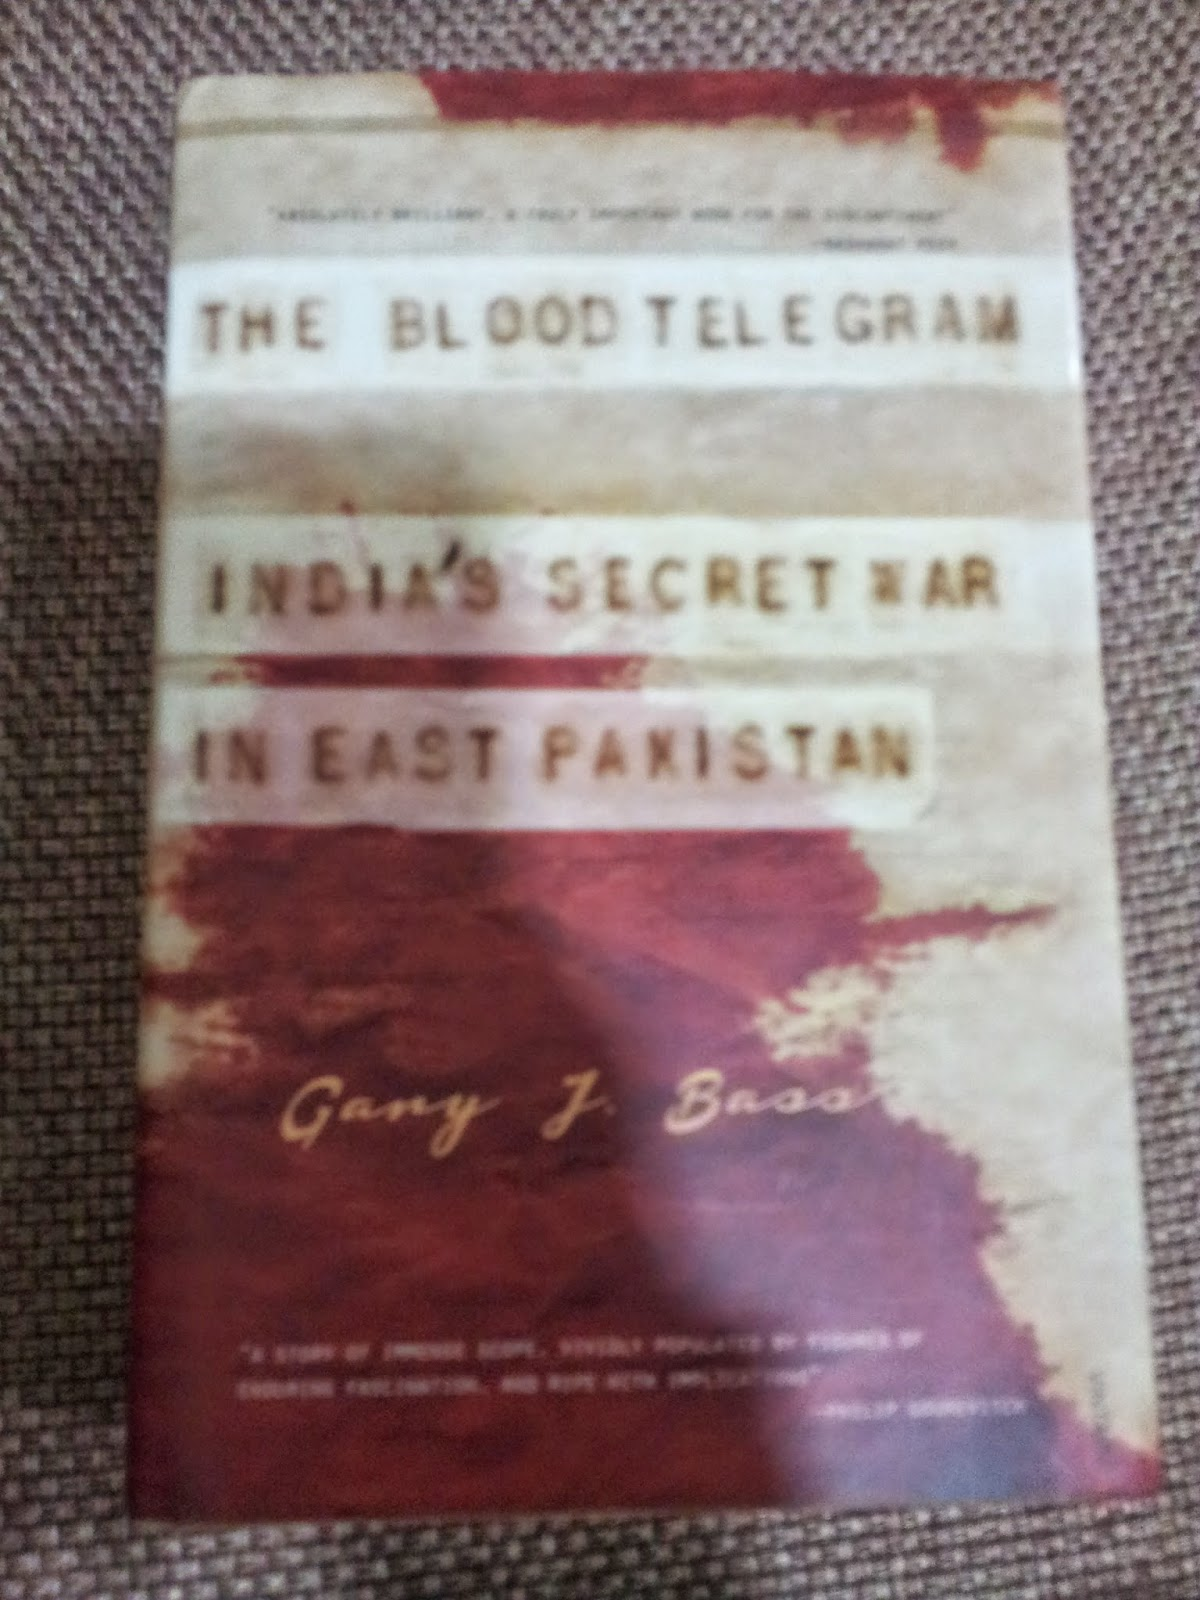 BJ's nocabbages: Book Excerpt: The Blood Telegram - India's